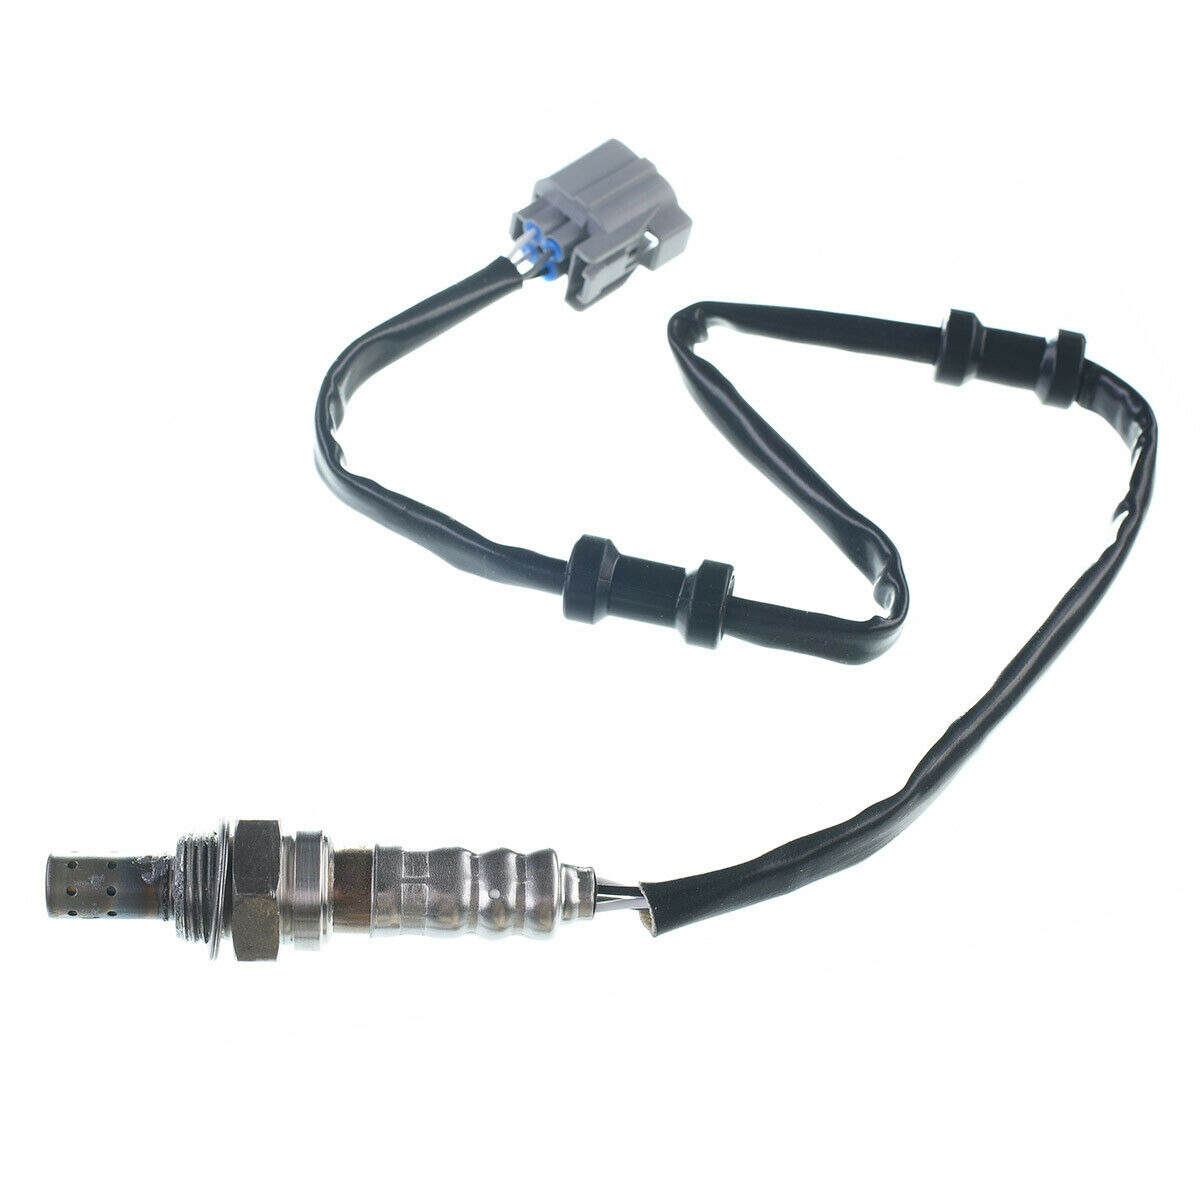 2x Upstream and Downstream O2 Oxygen Sensor for 01-05 Honda Civic I4 1.3L 1.7L